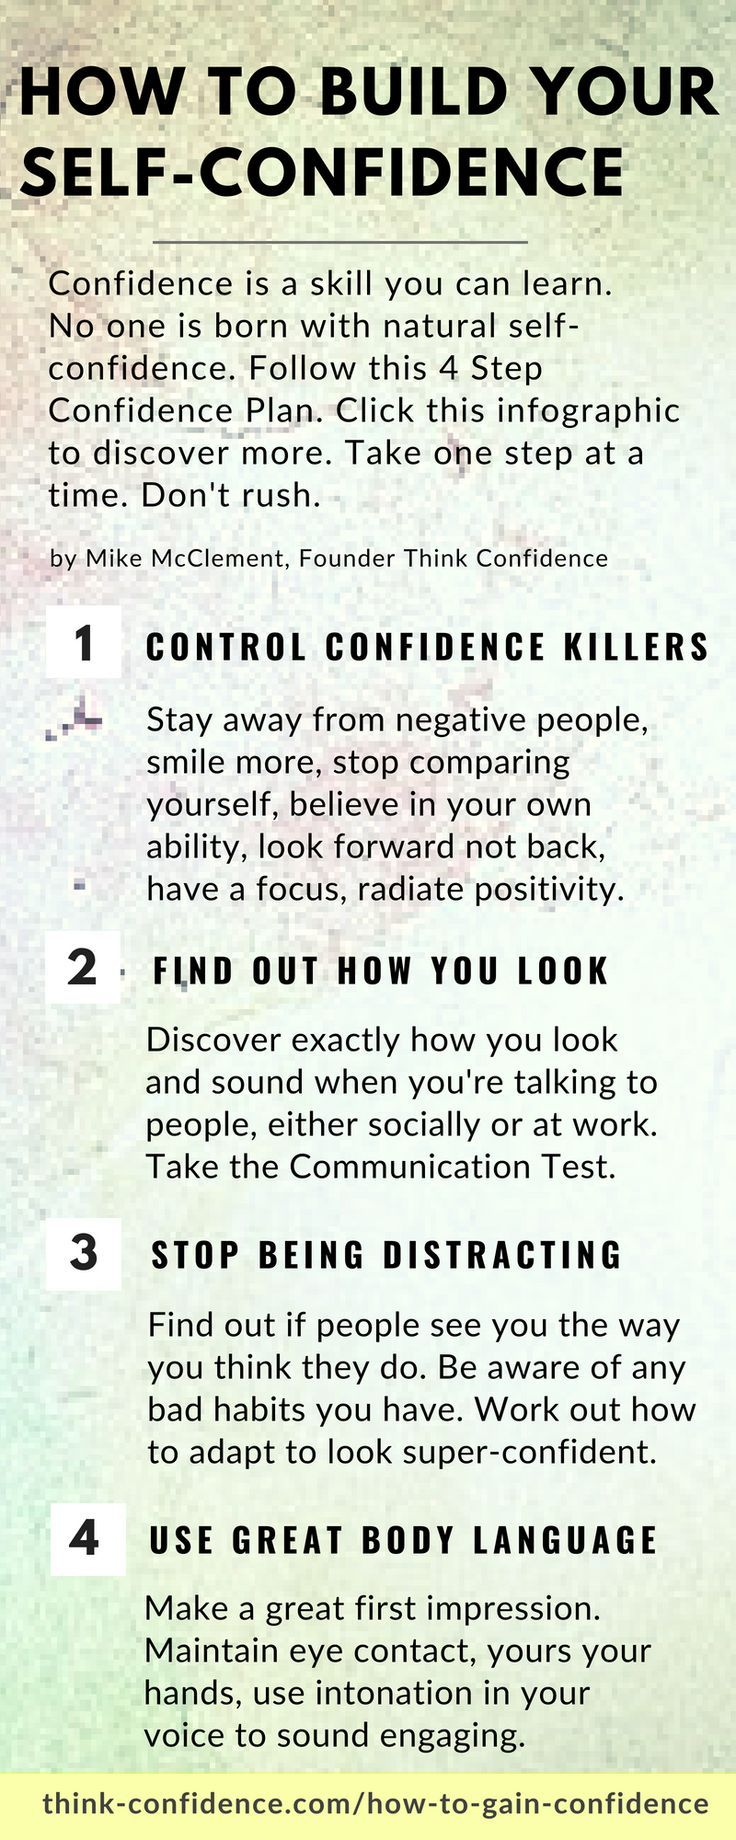 How to Gain Confidence in 4 Logical Steps - Think Confidence